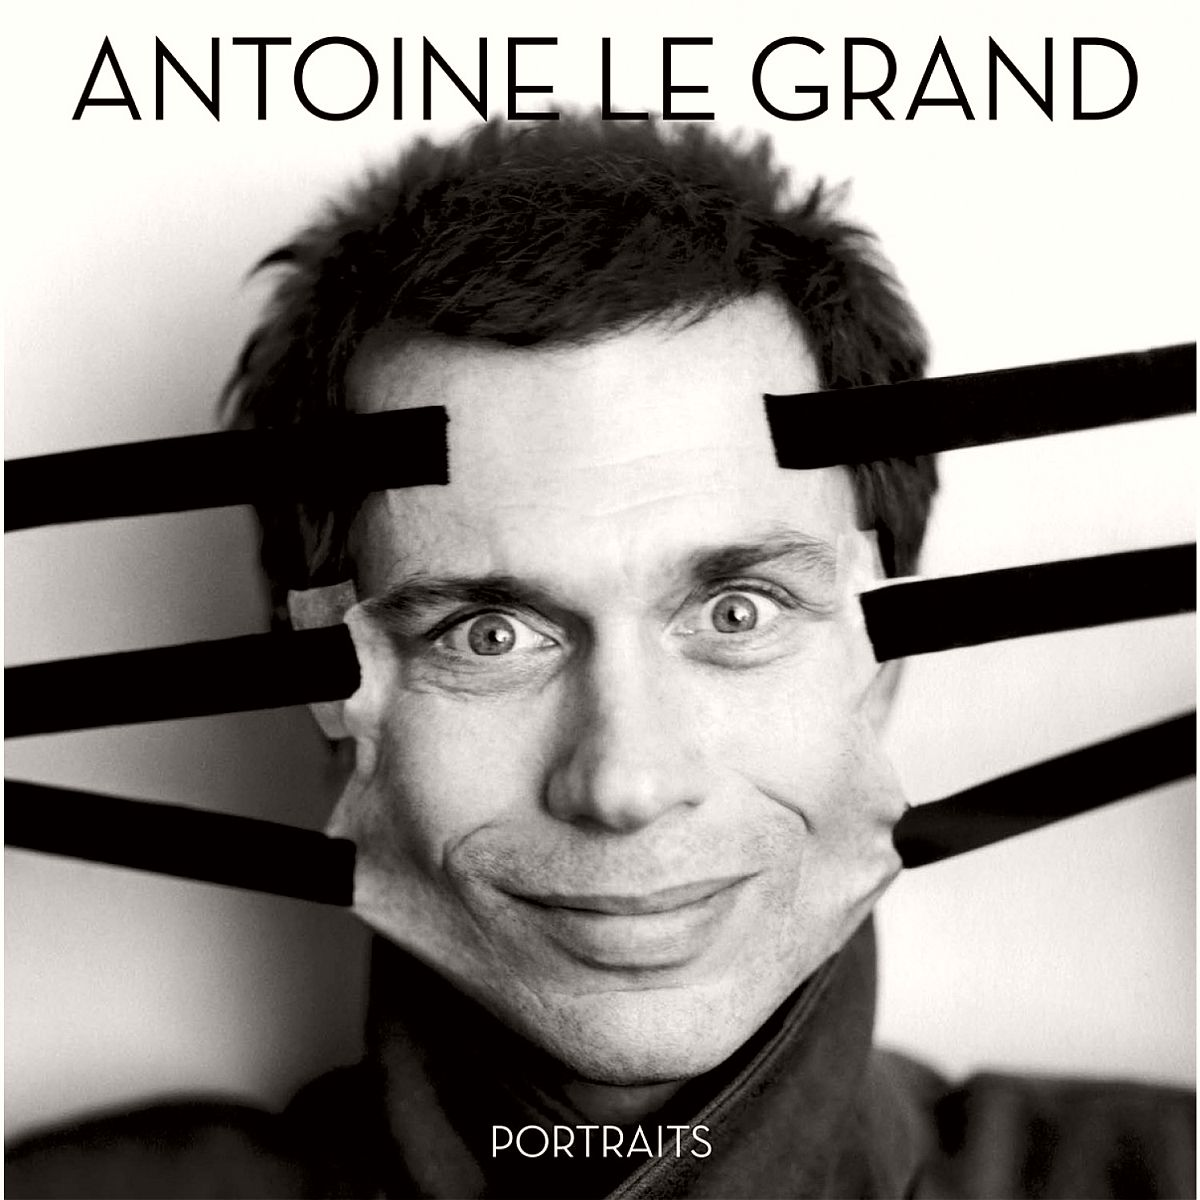 antoine-le-grand-portraits-00-book-cover